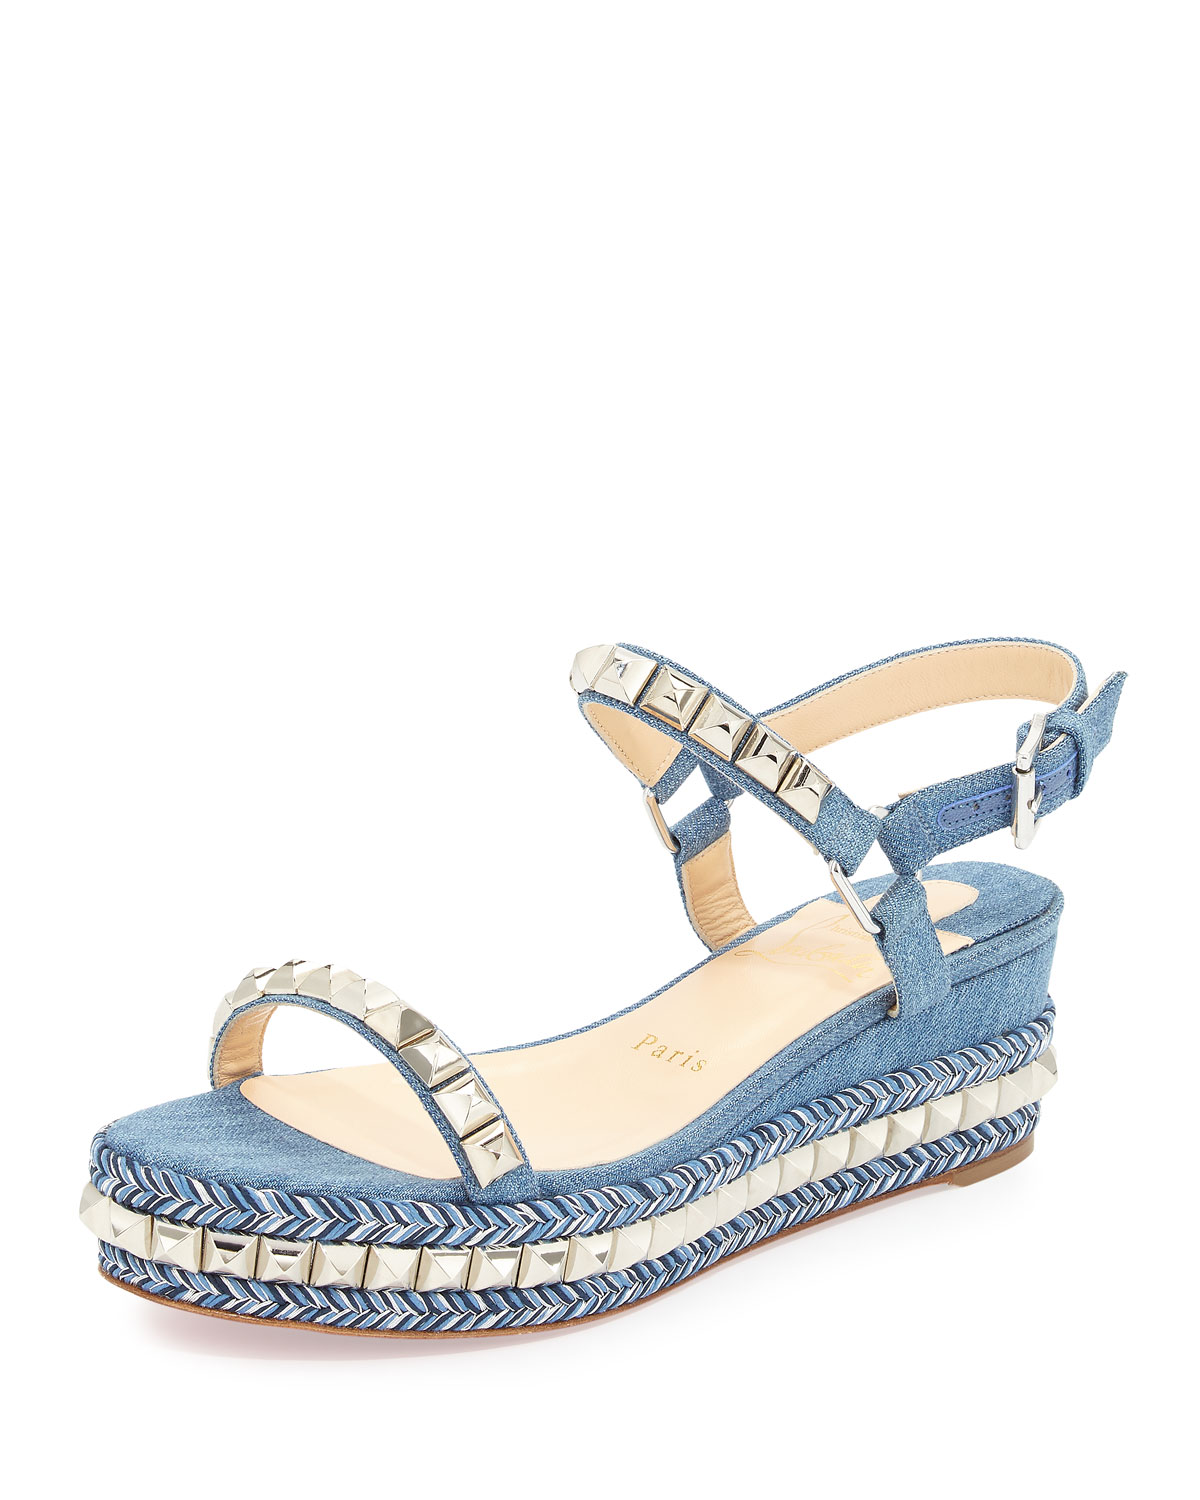 the latest f35ad 7770b Cataclou Denim 60mm Wedge Red Sole Sandal, Blue/Silver